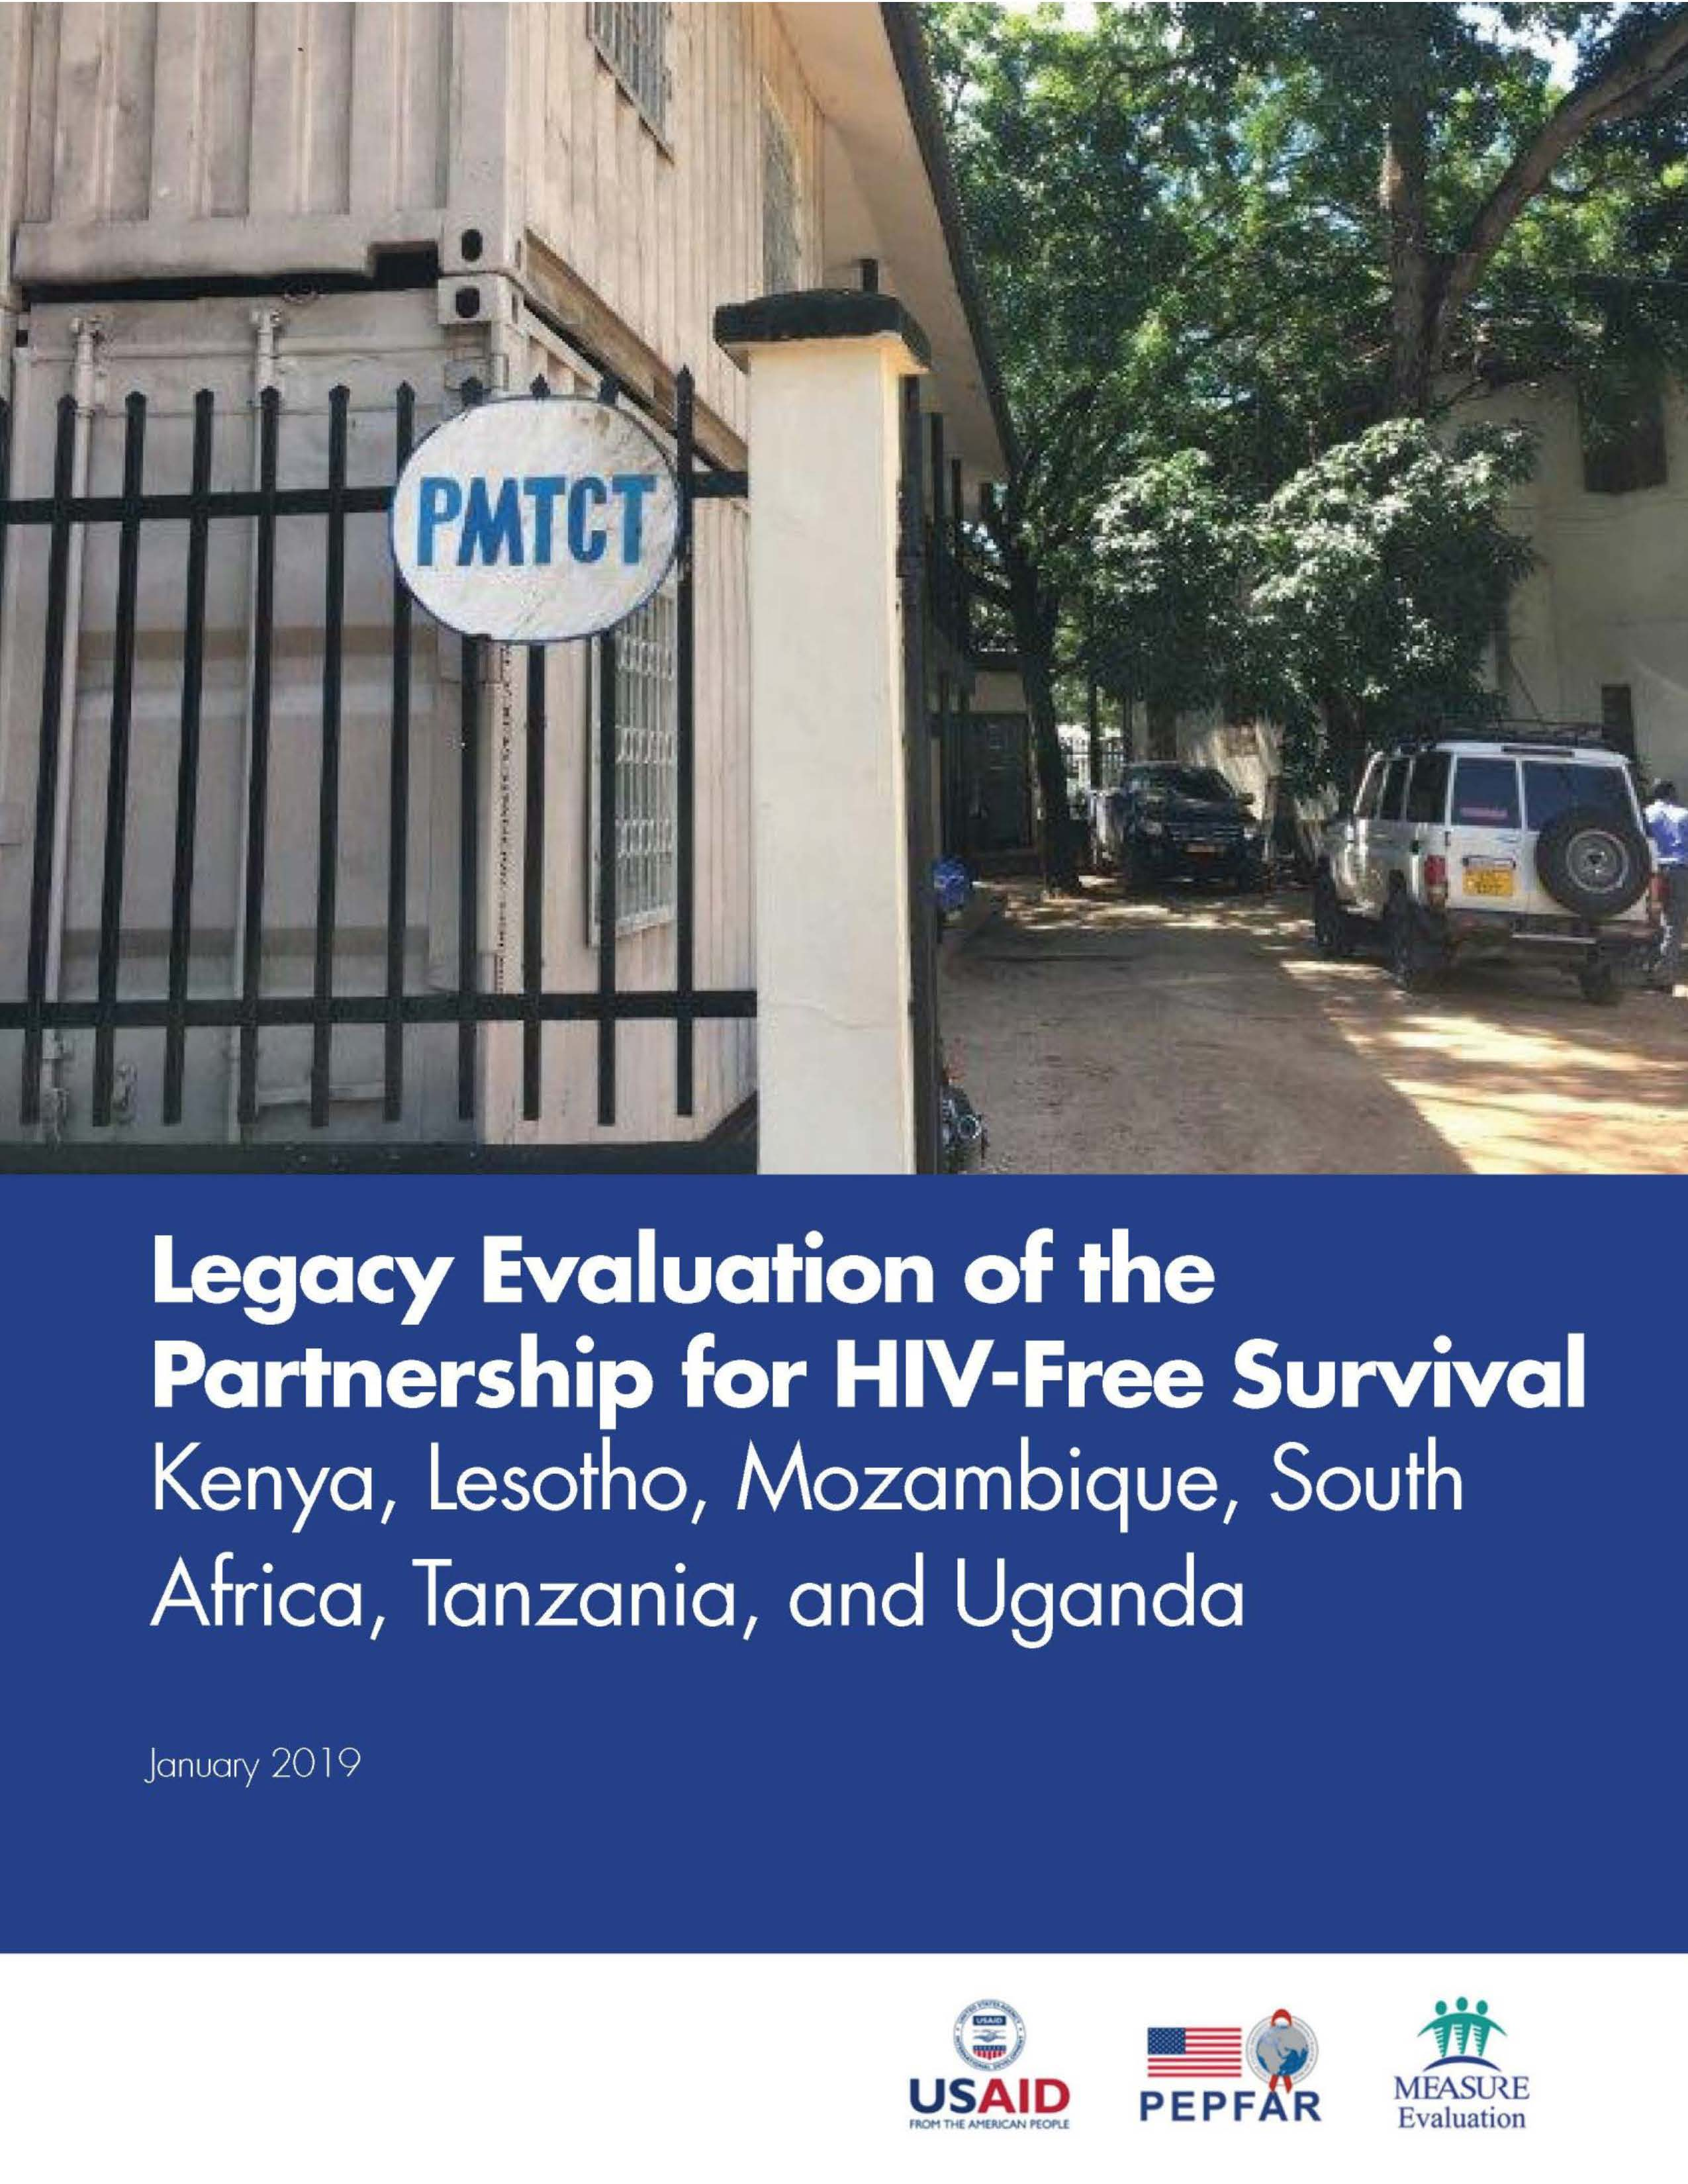 Legacy Evaluation of the Partnership for HIV-Free Survival: Kenya